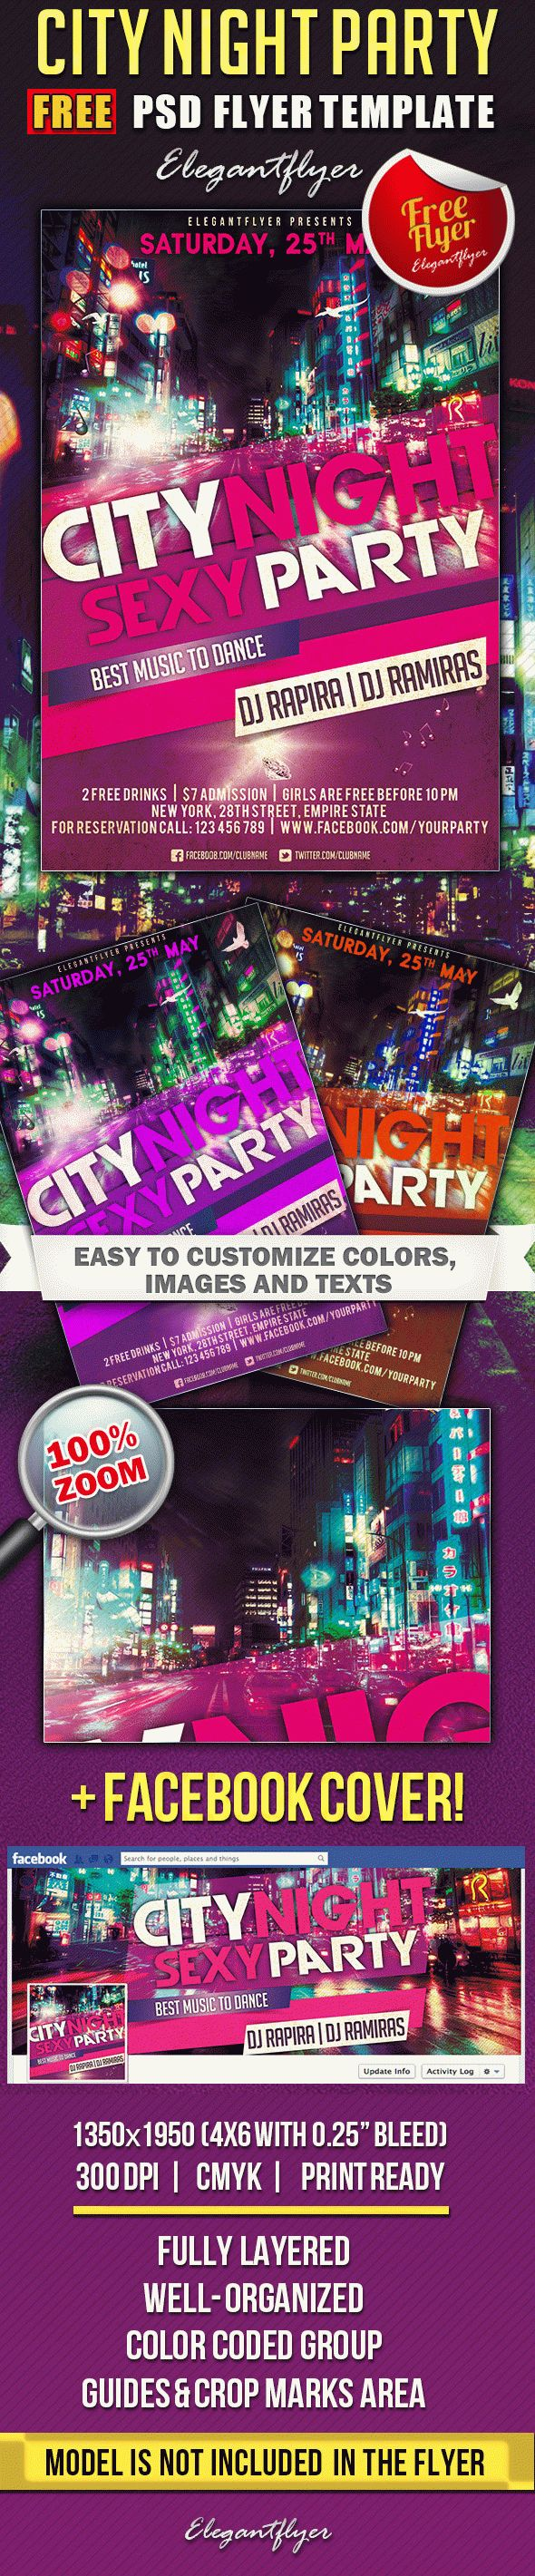 City Night Party – Free Flyer PSD Template